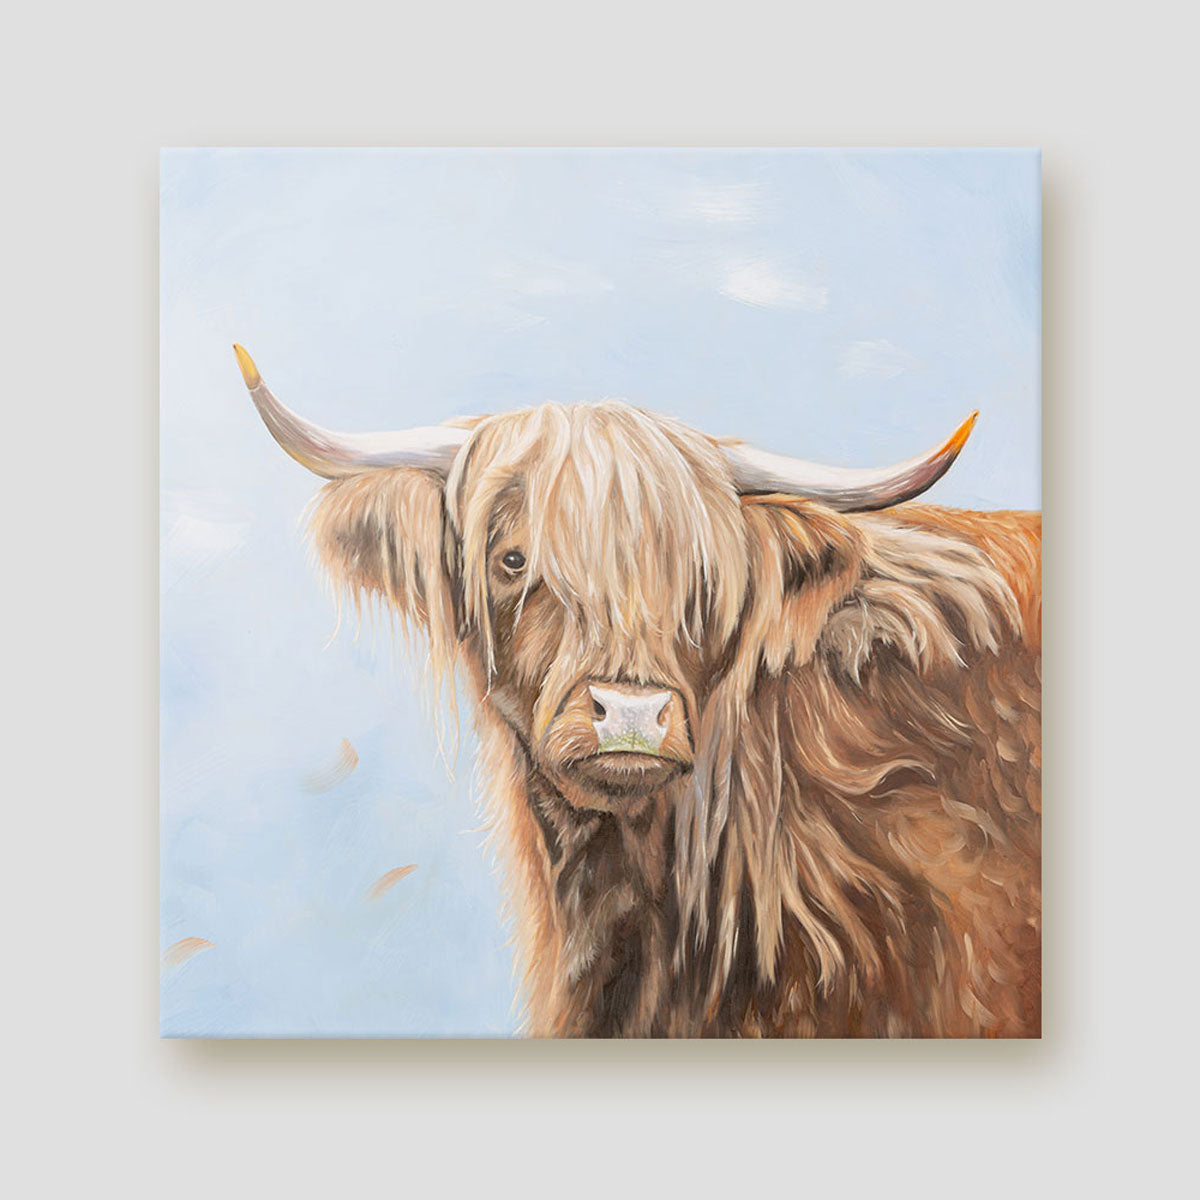 Fern Highland cow canvas